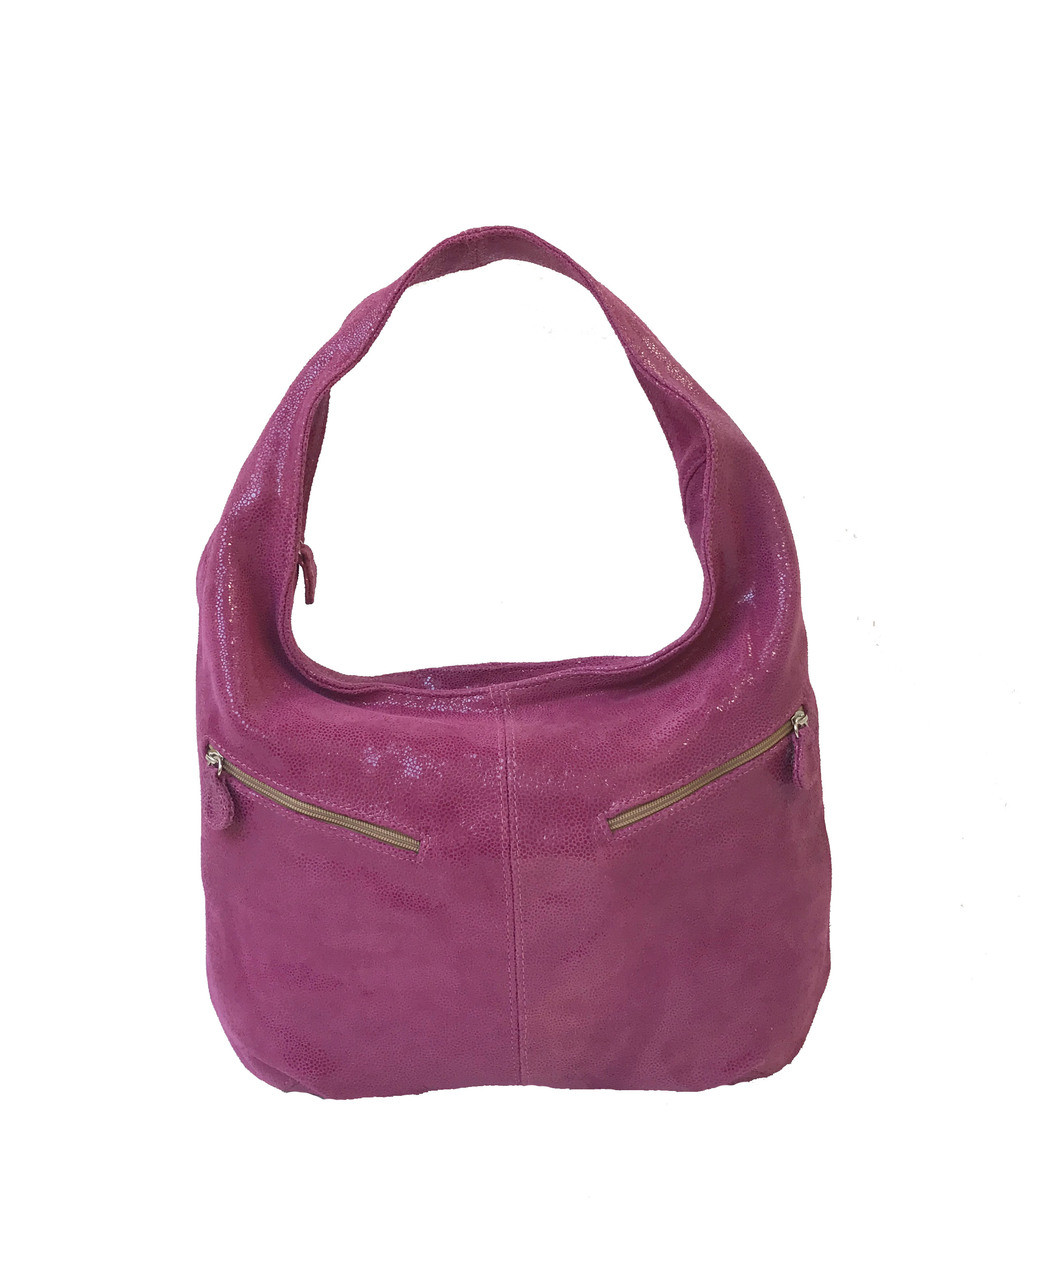 12895e4859cca0 Slouchy Hobo Bag, Pink Suede Leather Purse, Aly - Fgalaze Genuine Leather  Bags & Accessories